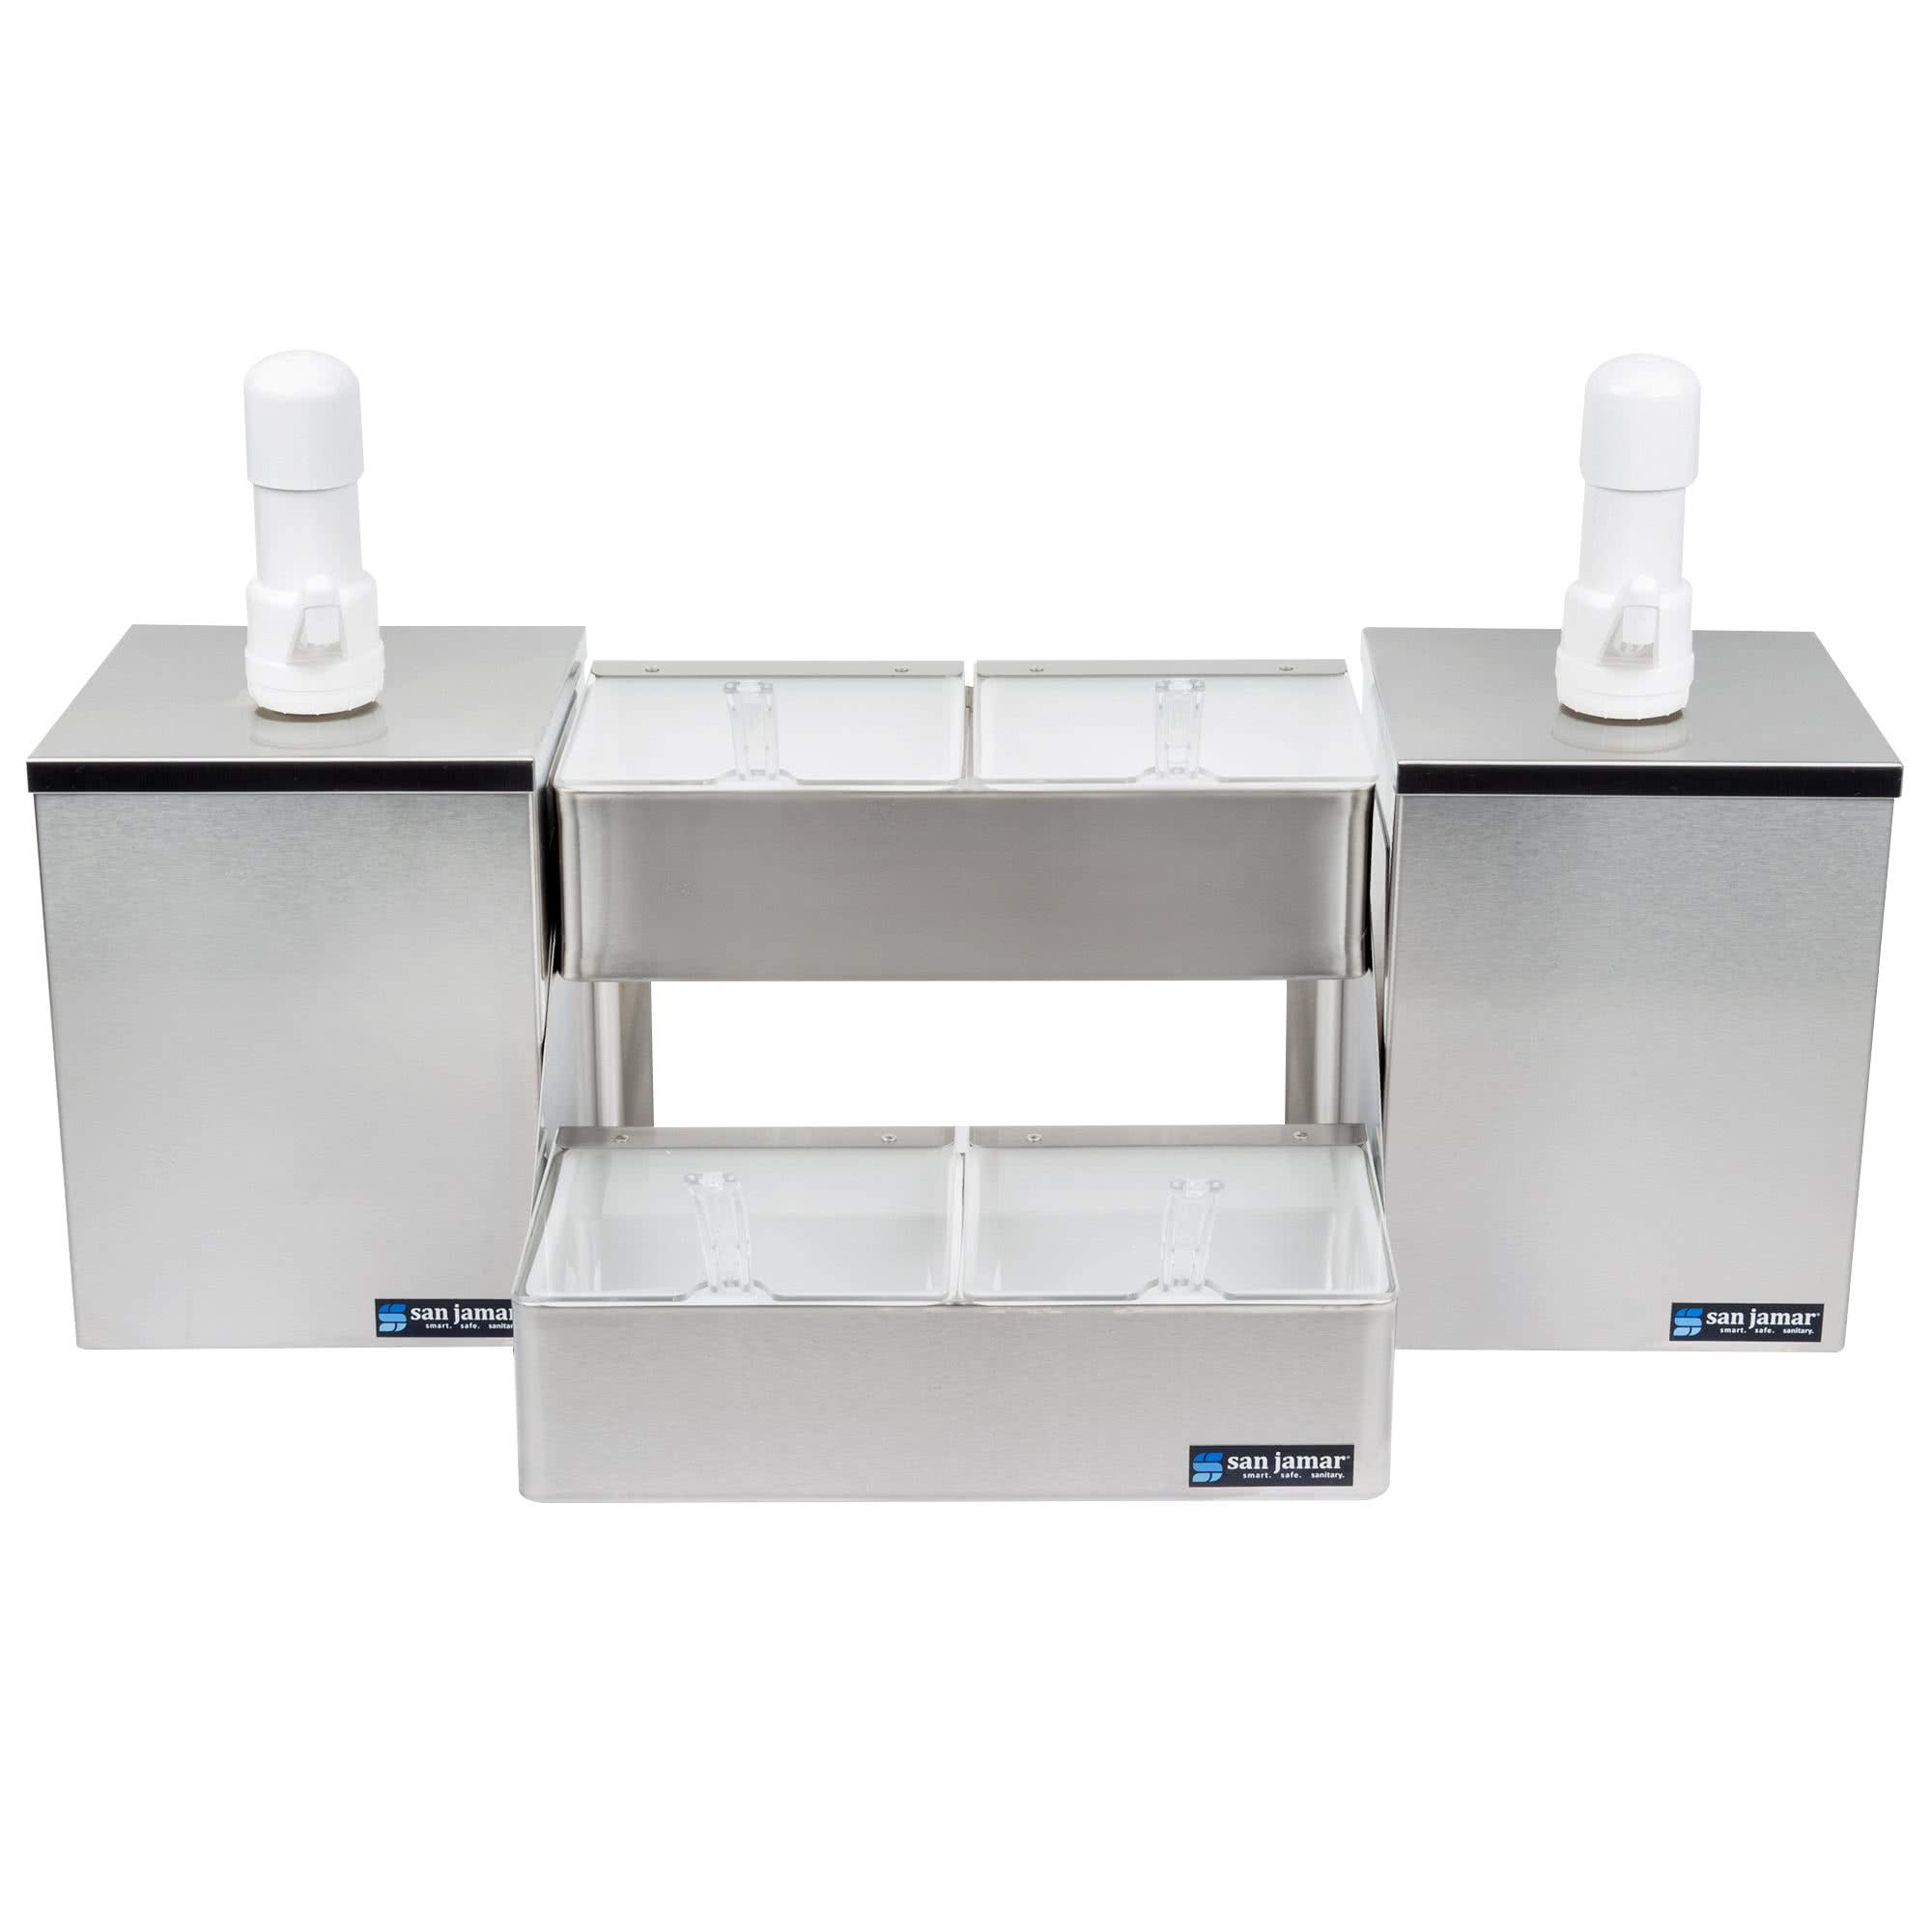 TableTop King P9825 Pump and Condiment Tray Center with 4 Trays and 2 Pump Boxes